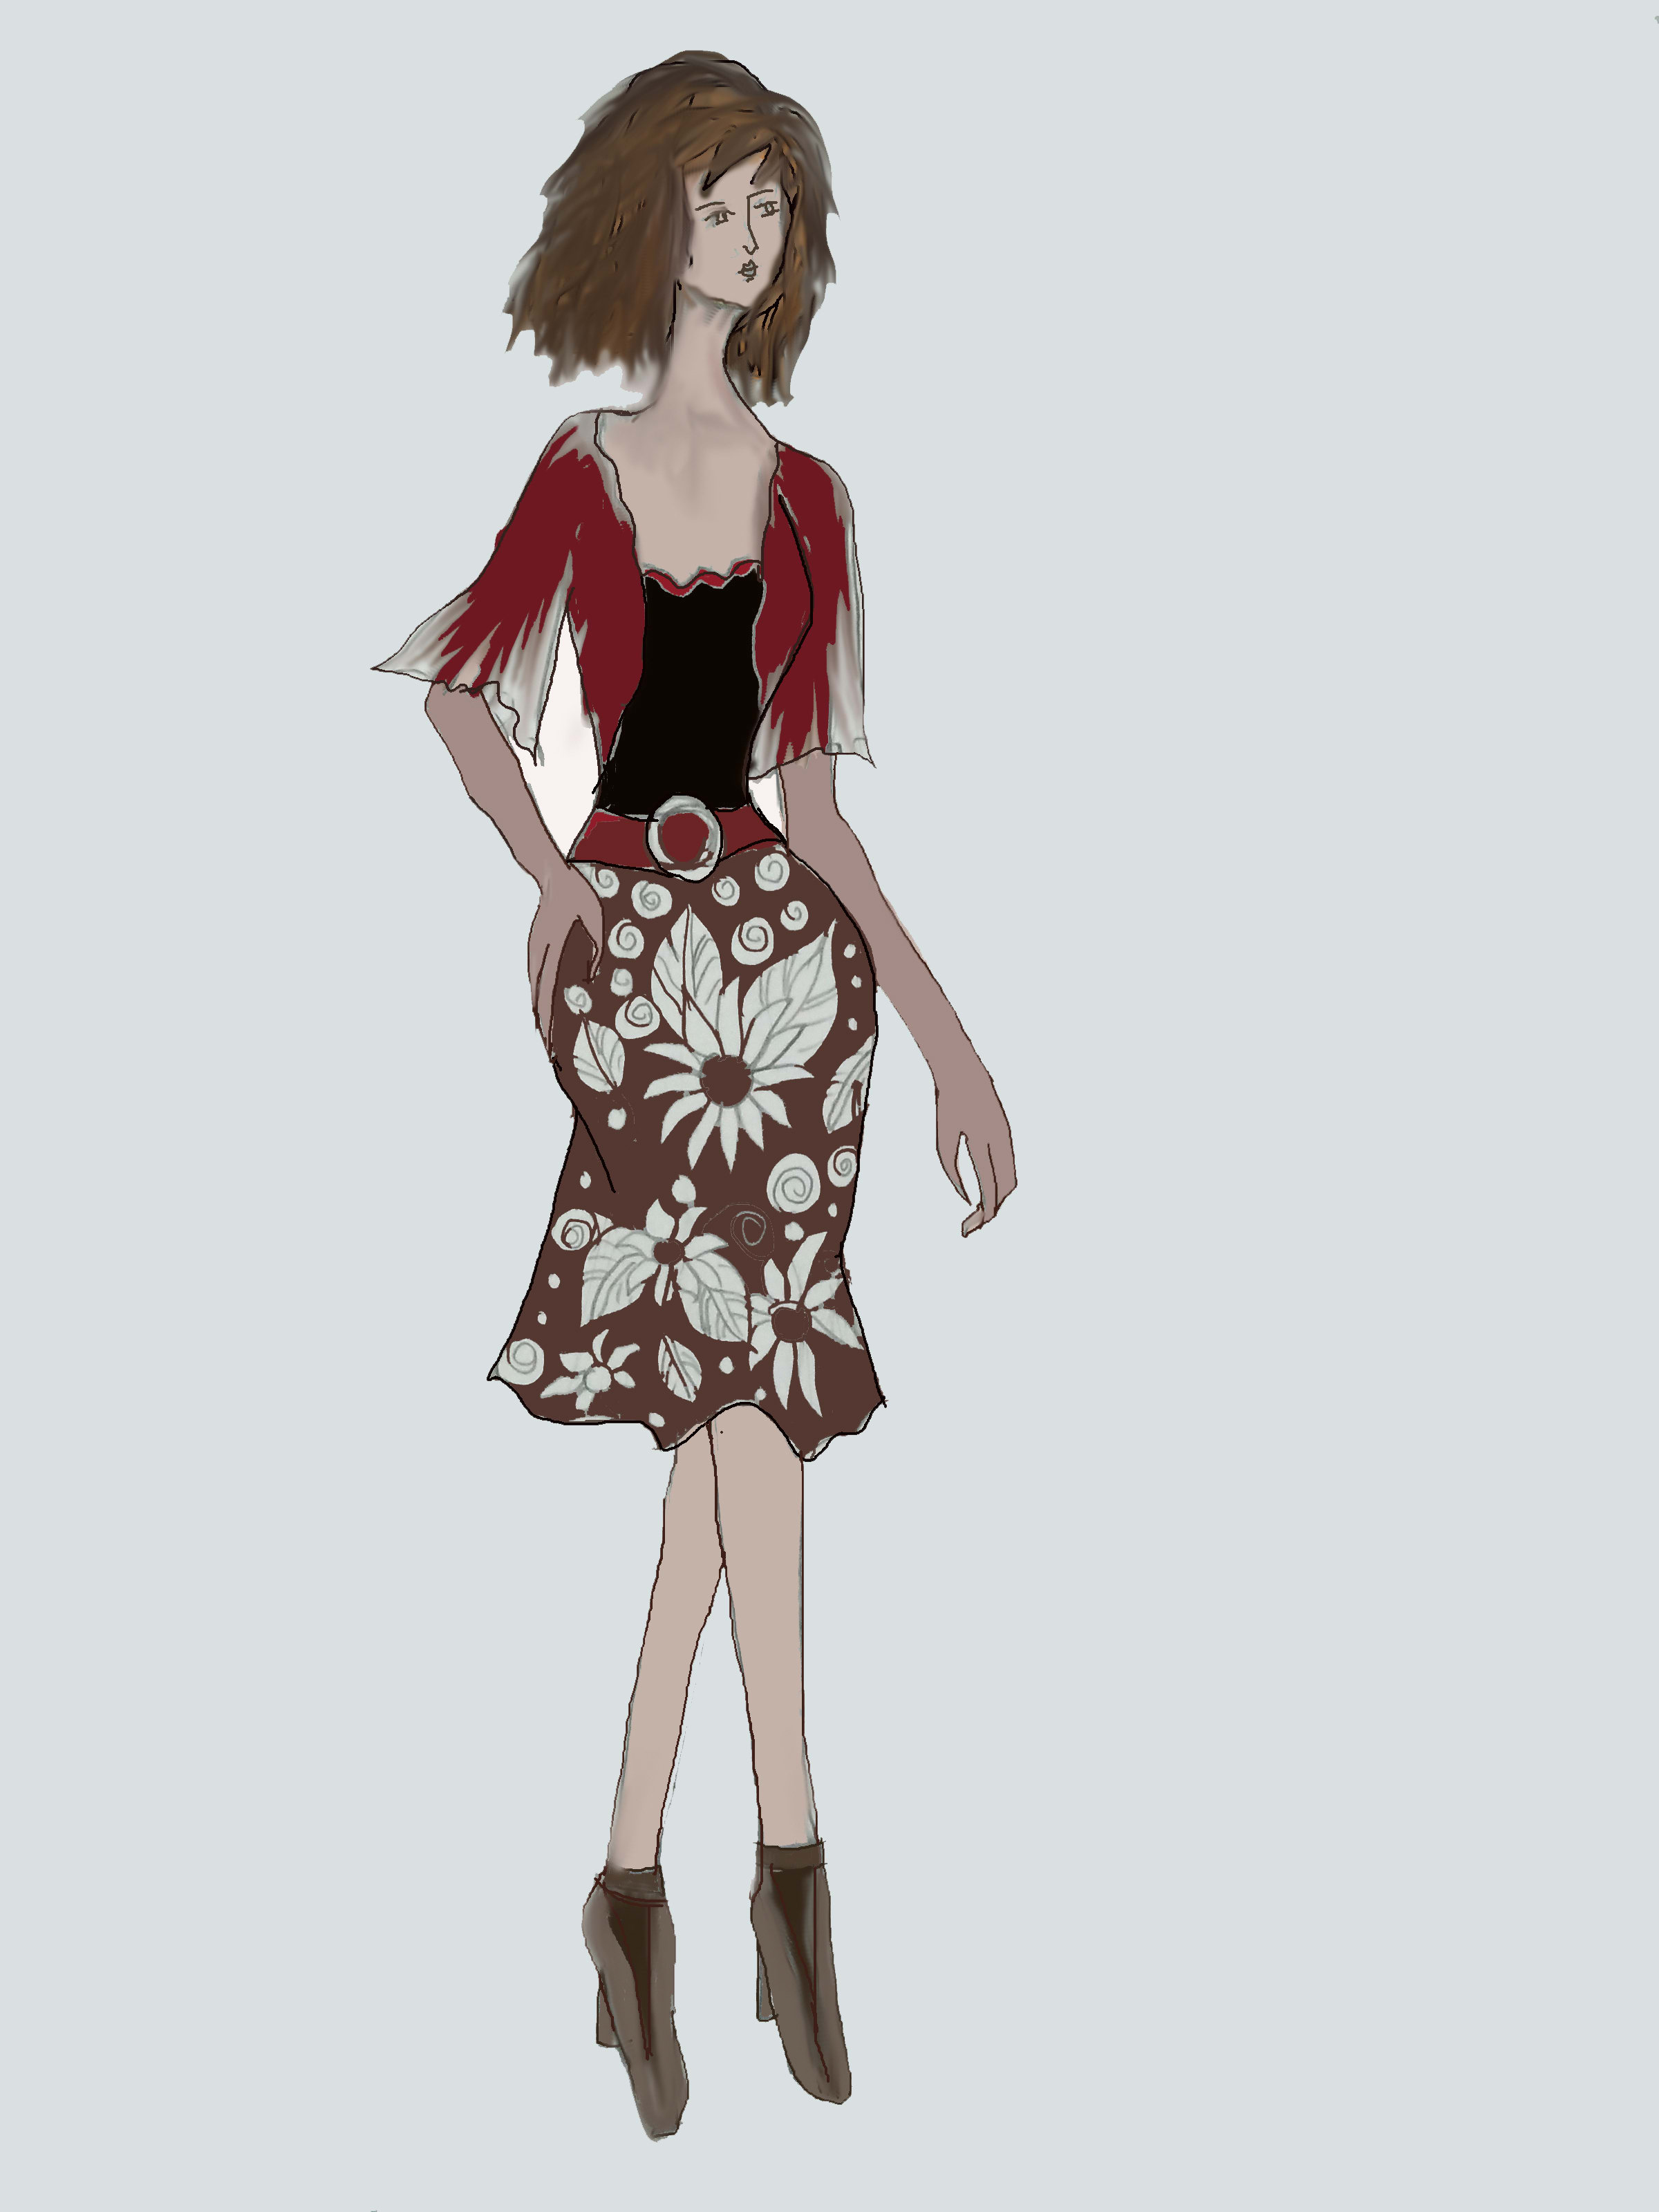 Draw Your Fashion Design By Sakitara